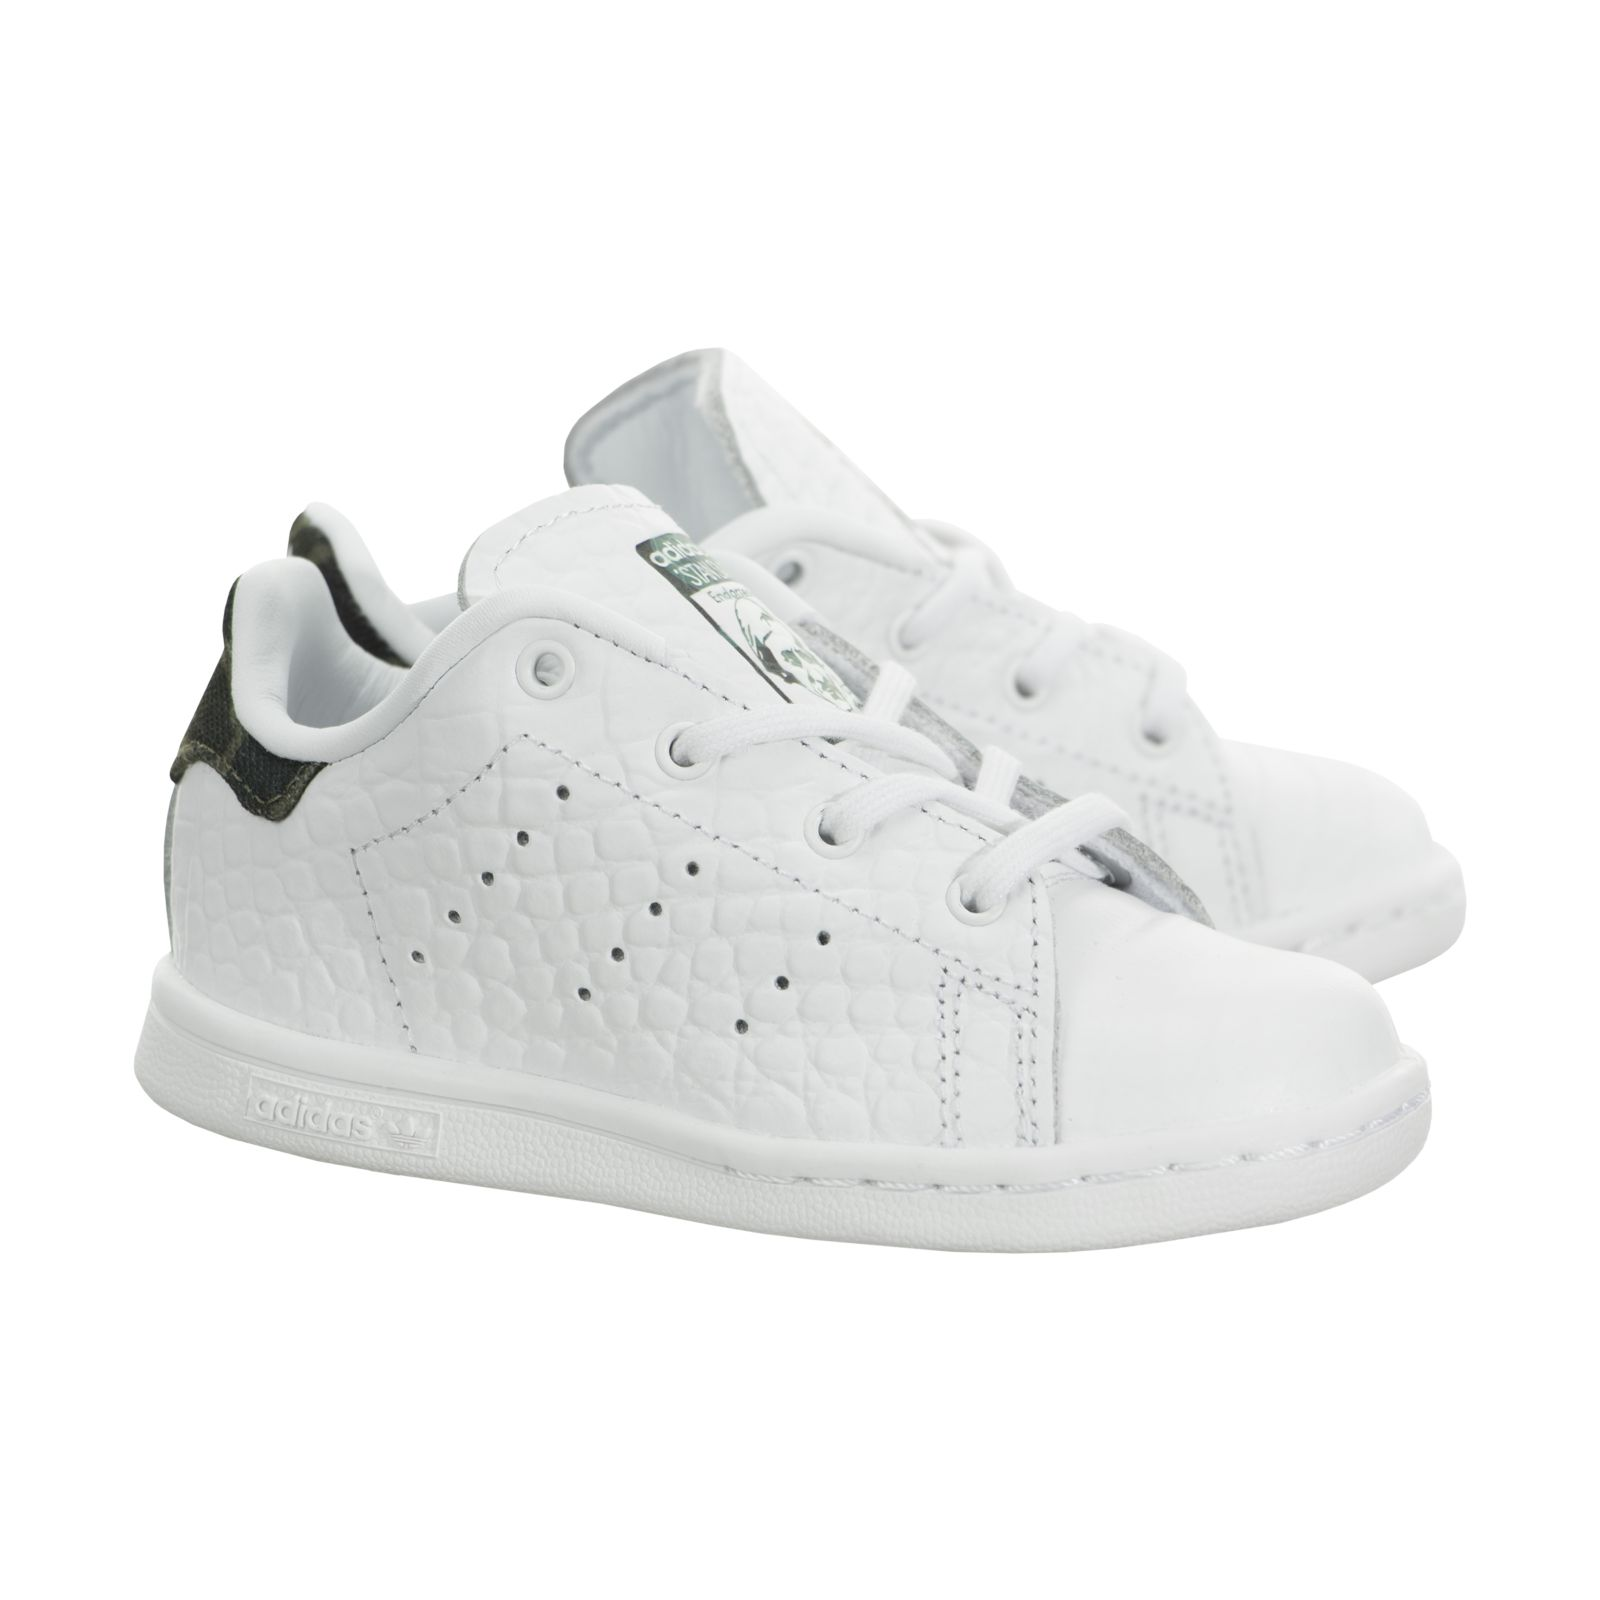 Baby Shoes Adidas Originals Stan Smith Infant/toddler Shoes Footwear White/blue Bb3000